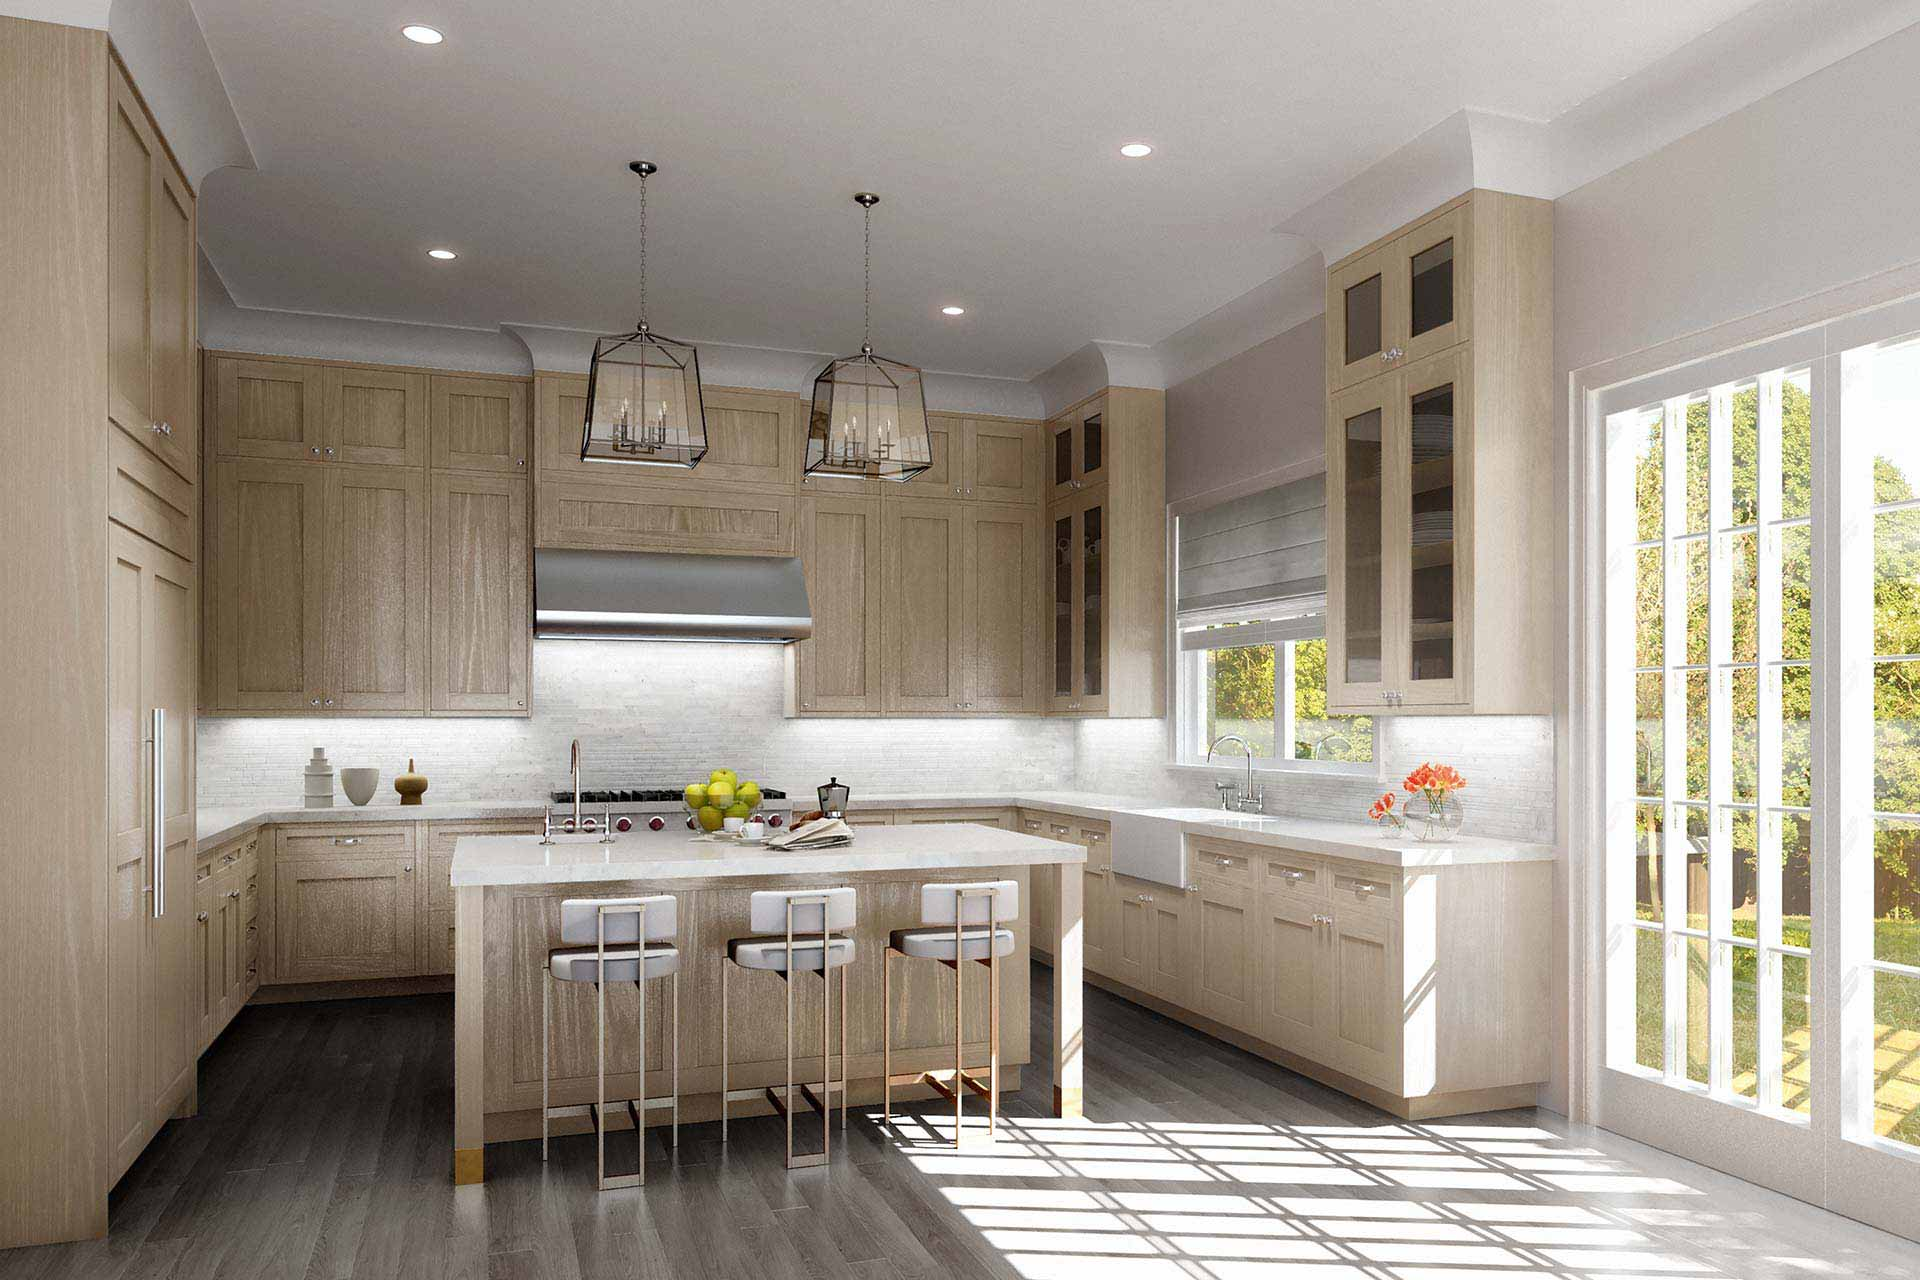 Kitchen interior rendering in Hamptons